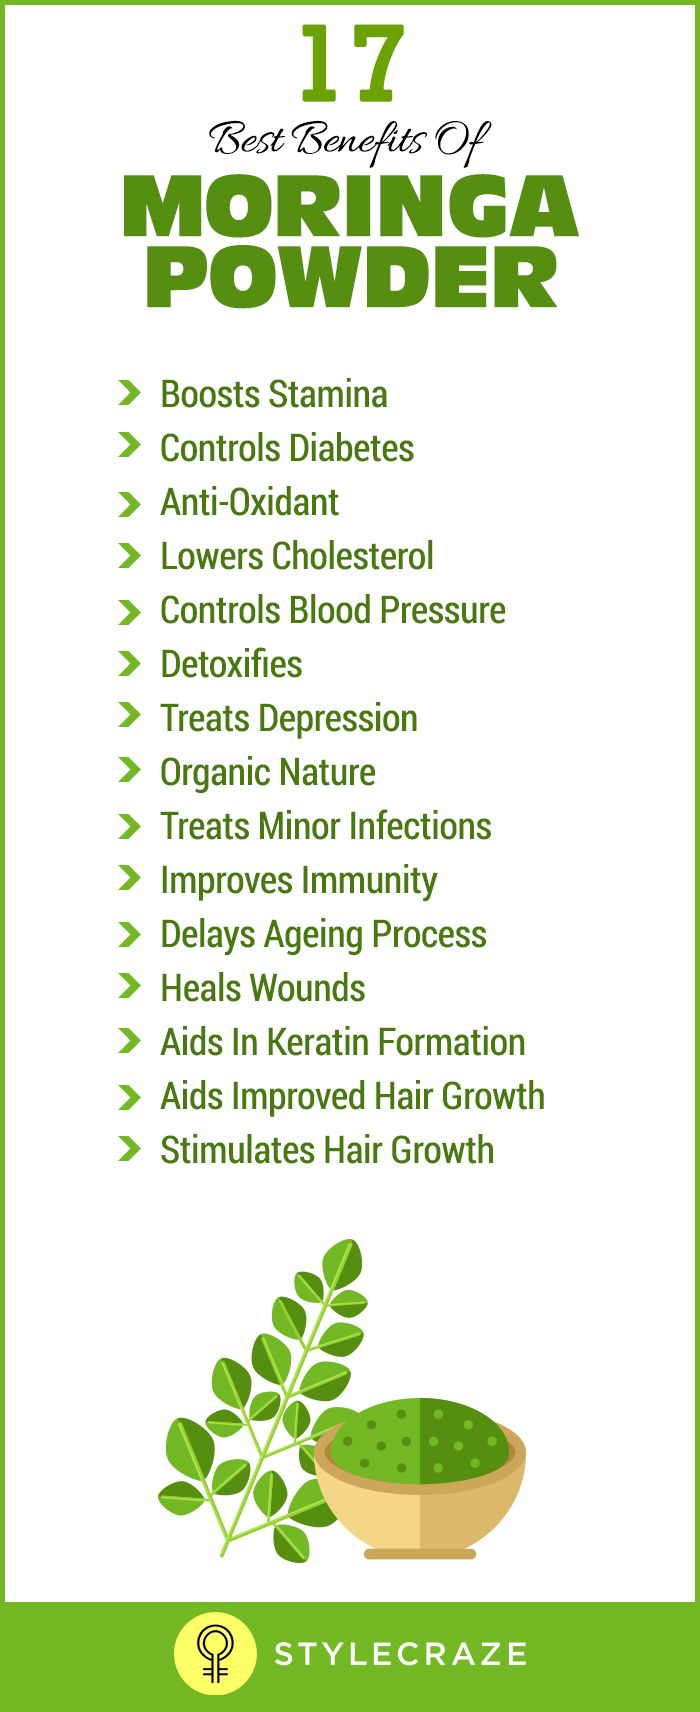 Moringapflanze 17 Best Benefits And Uses Of Moringa Powder Health Benefits Of